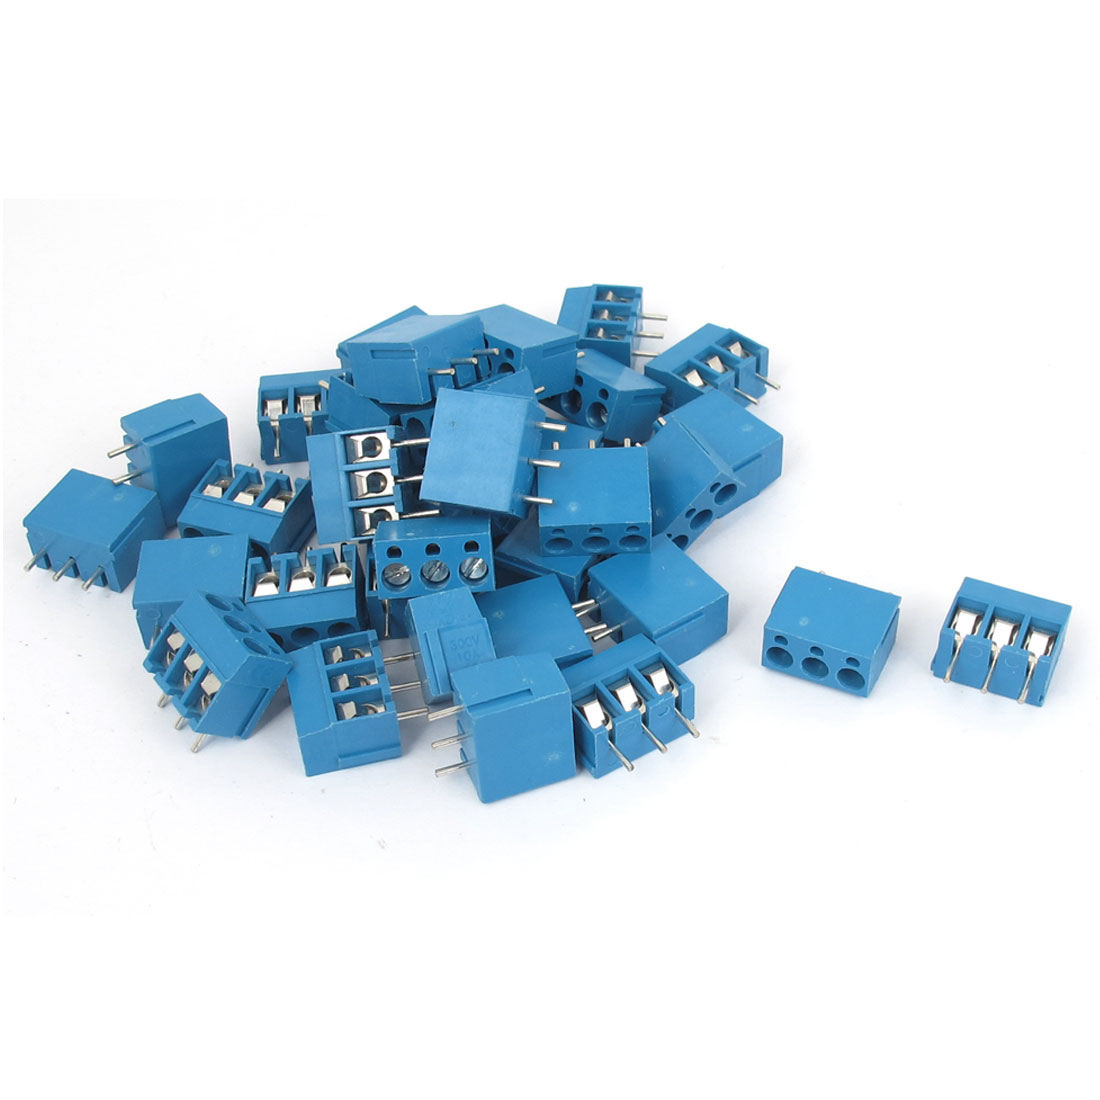 AC 300V 10A 3 Poles 5mm Pitch Pluggable PCB Mount Screw Terminal Block Connector 35pcs